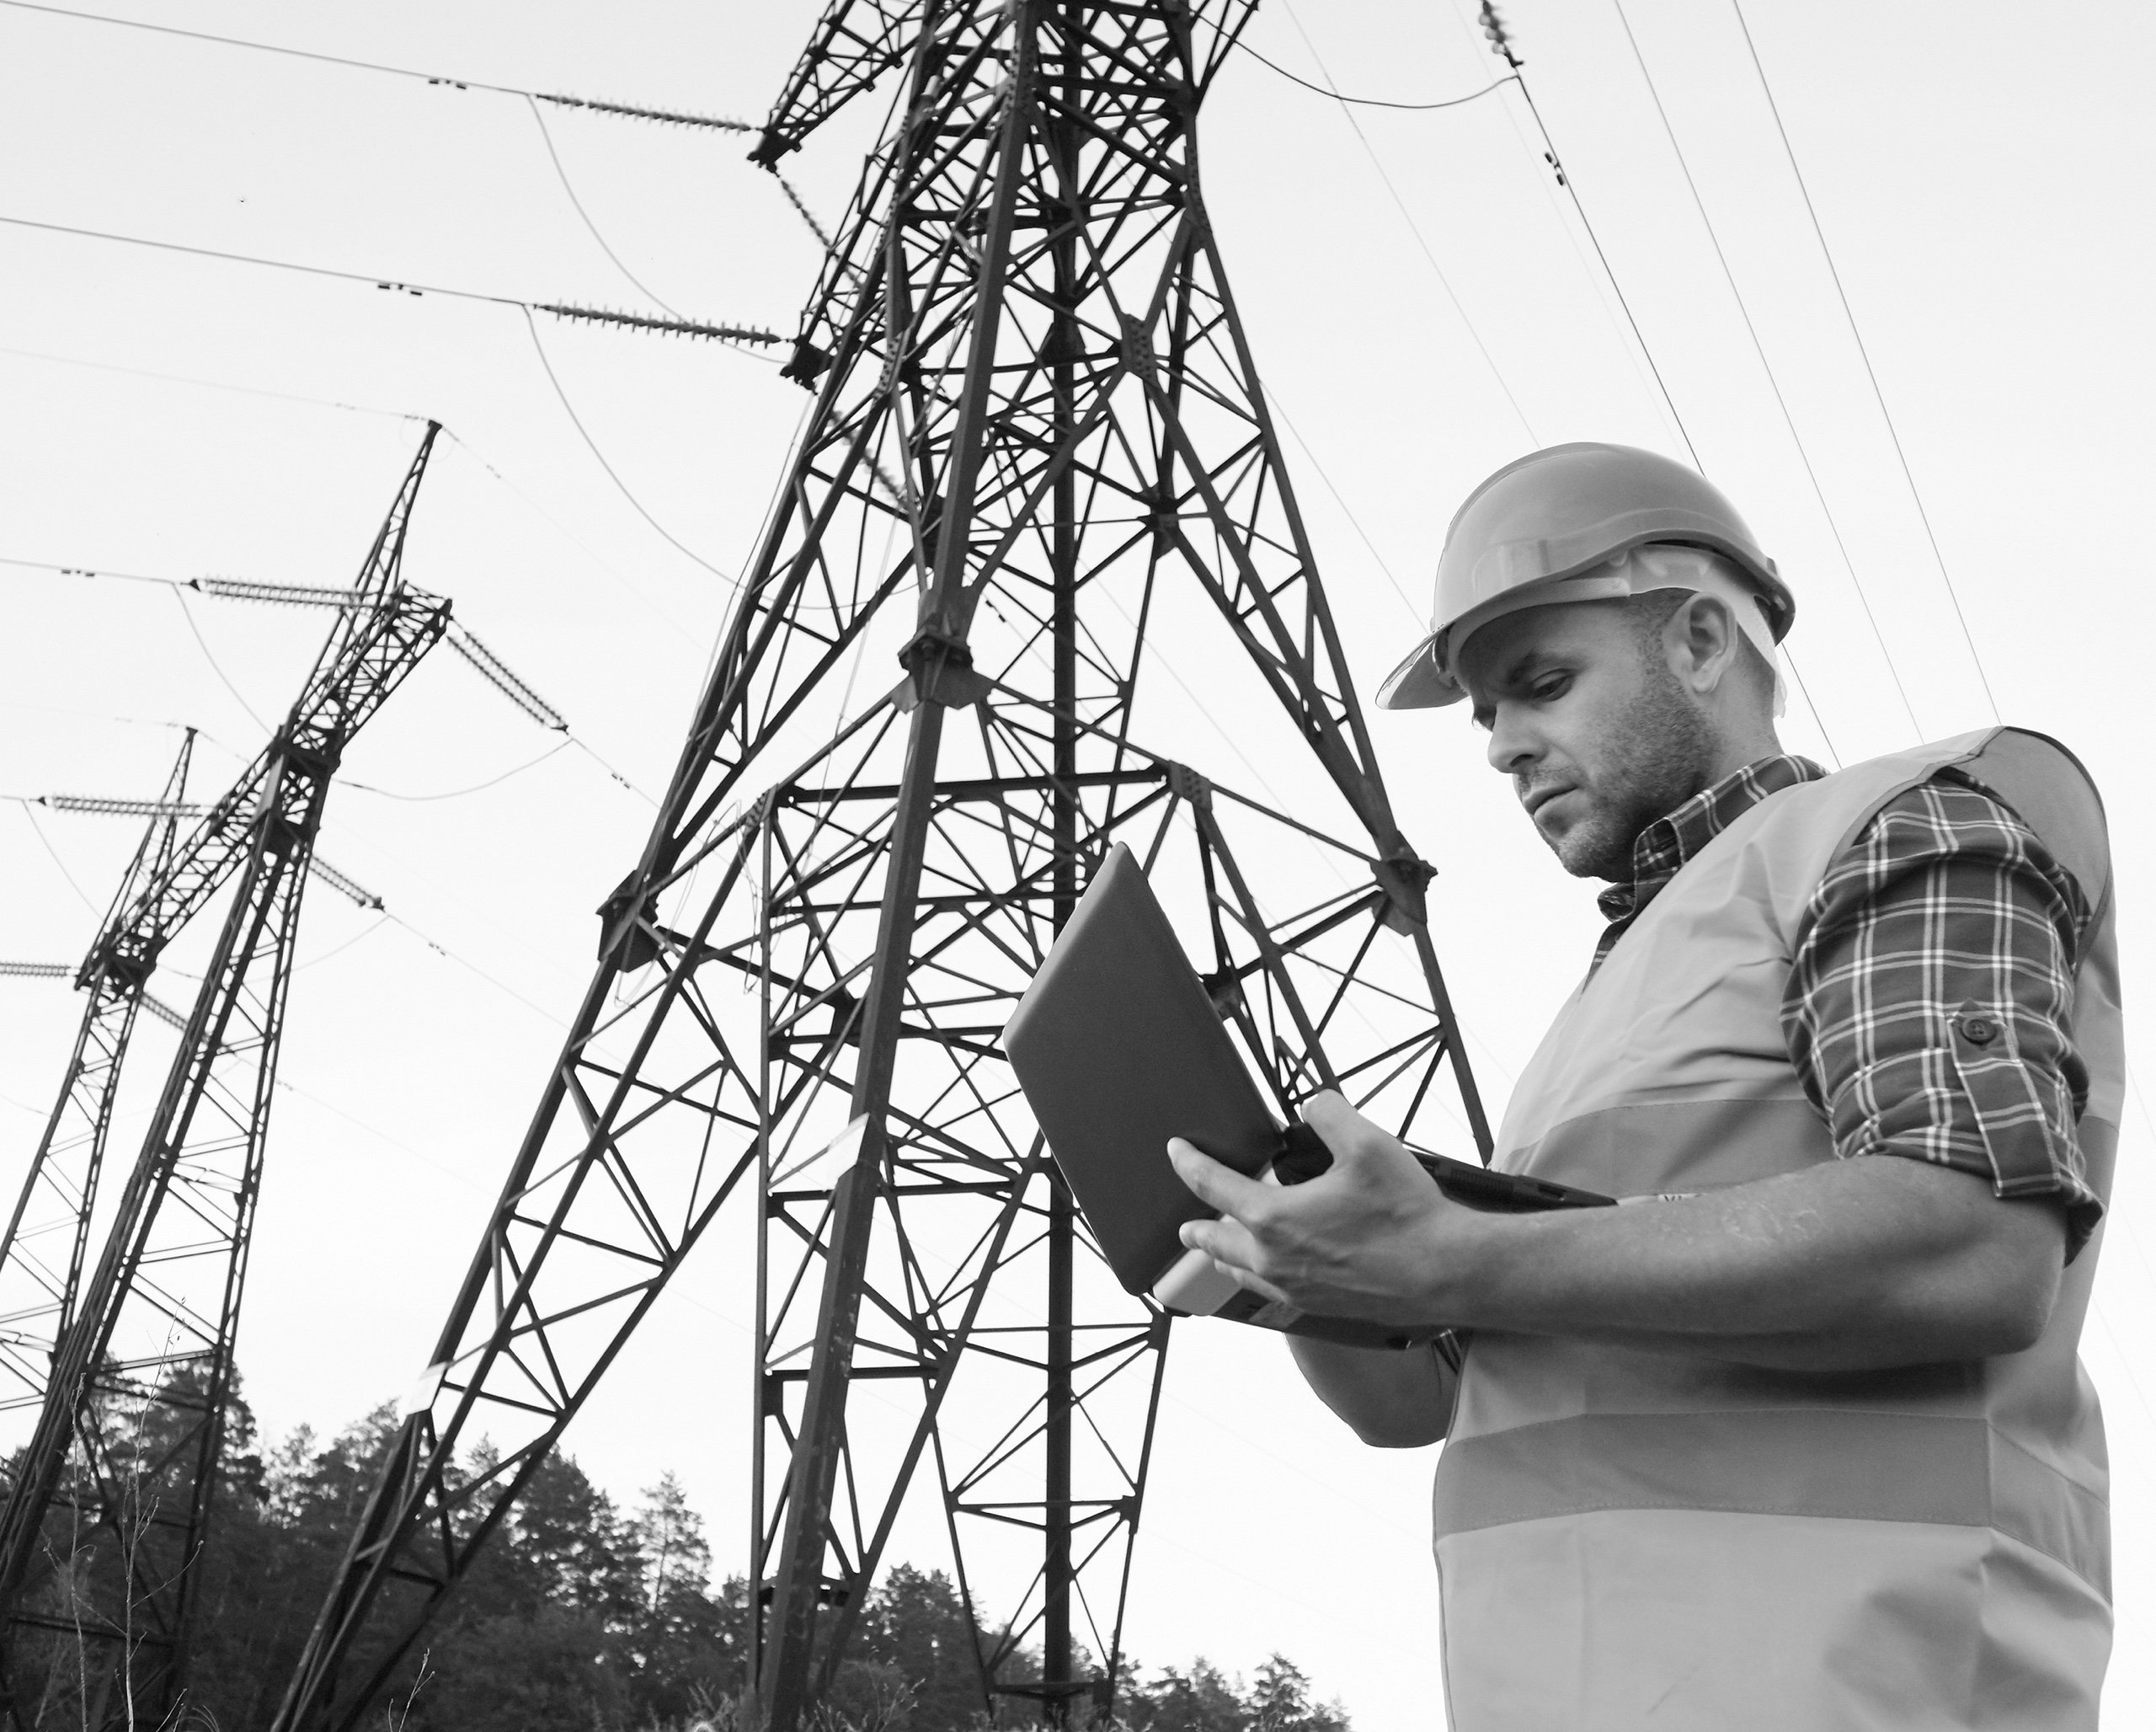 Man in front of electrical tower